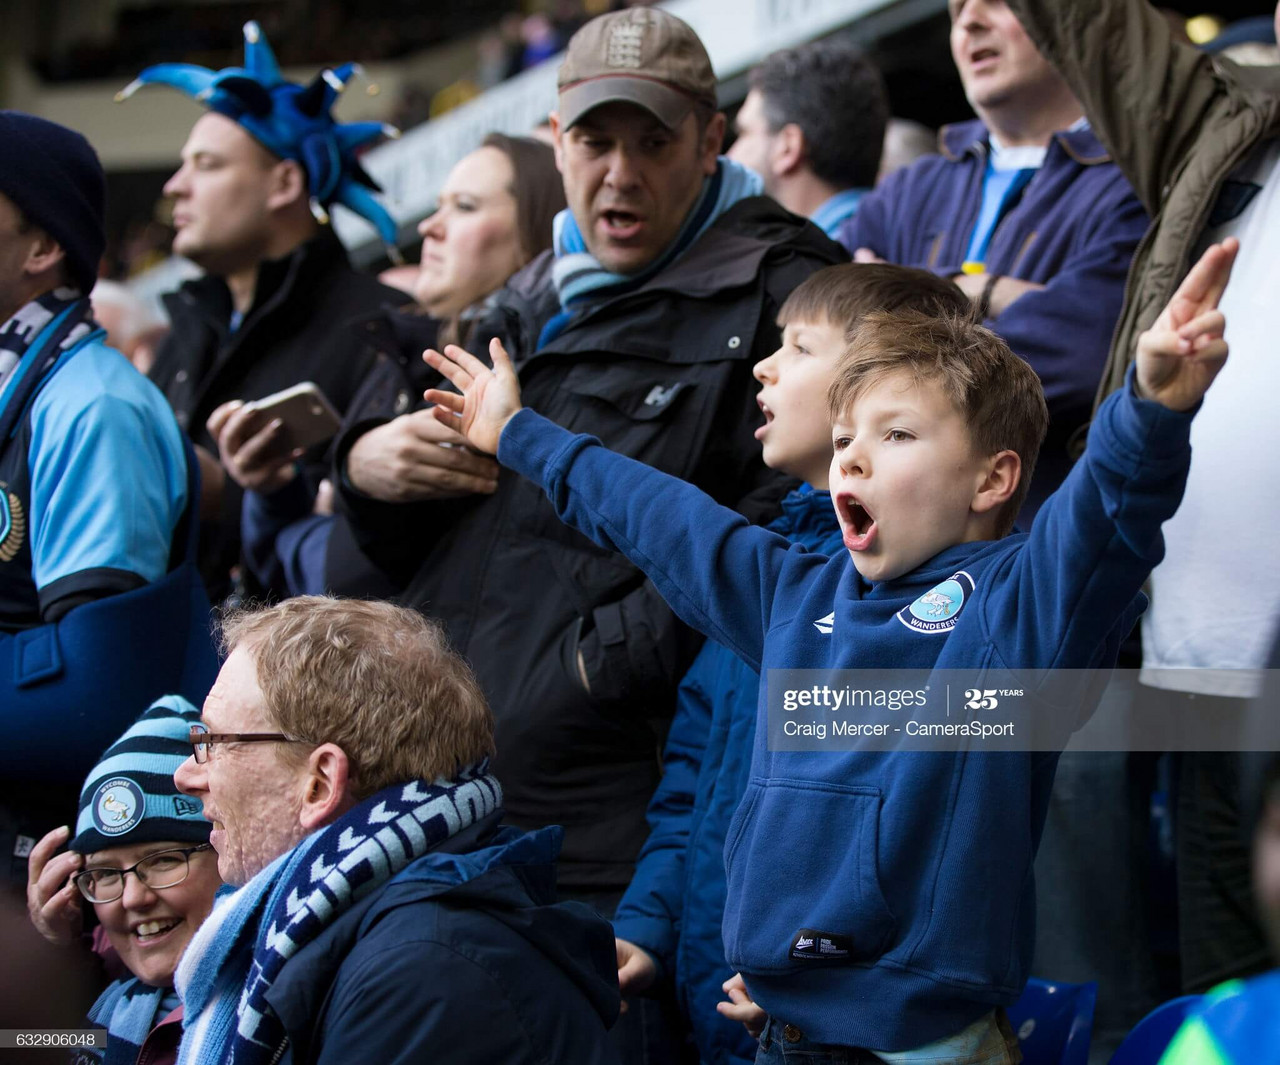 Wycombe fans will finally return to Adams Park this week to see their side in Championship action for the first time in the clubs history. (Photo by Craig Mercer - CameraSport via Getty Images)